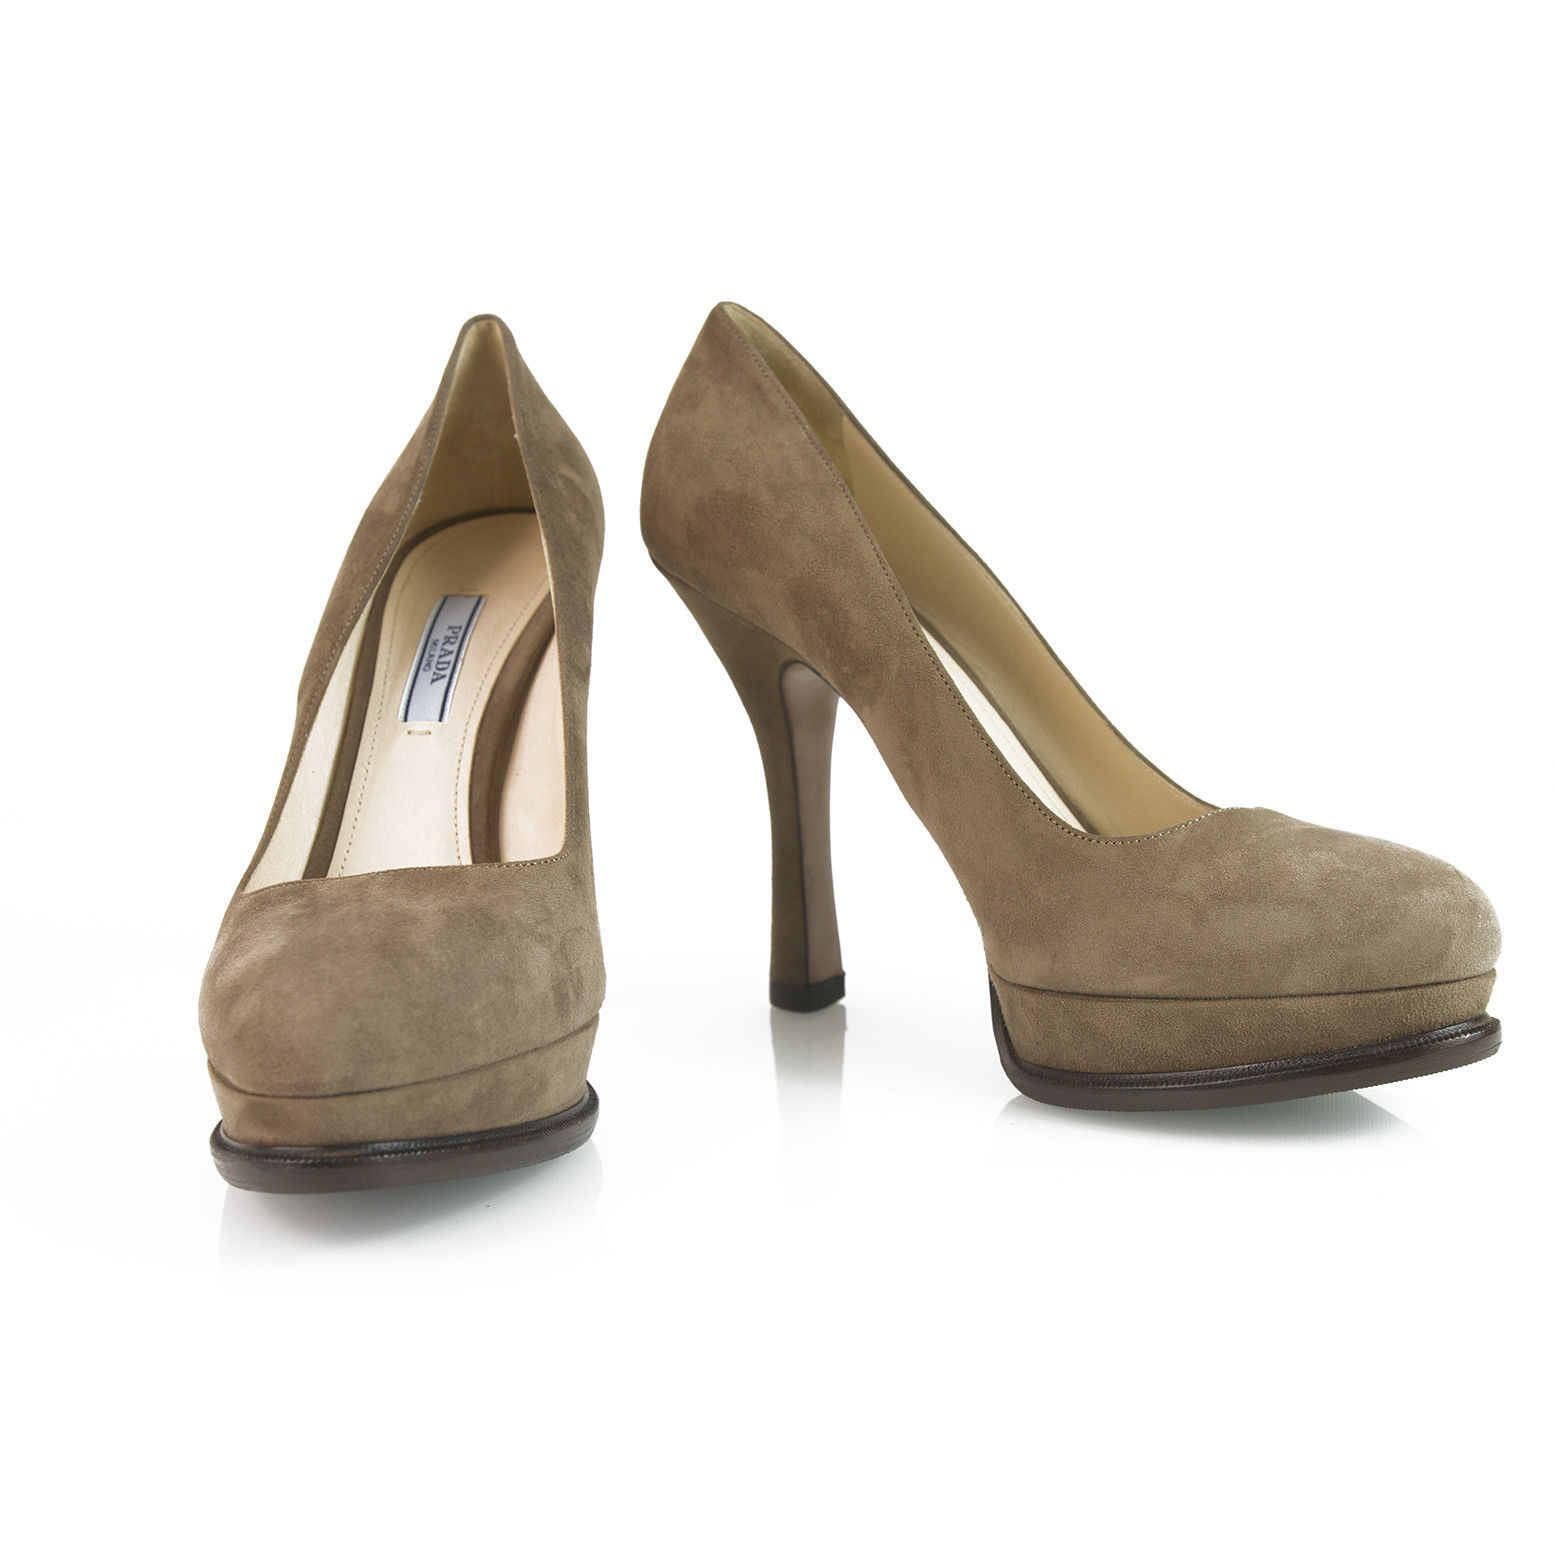 Prada Taupe Brown Suede Leather Classic Pumps Round Toe Slim Heel Platform sz 40 image 1